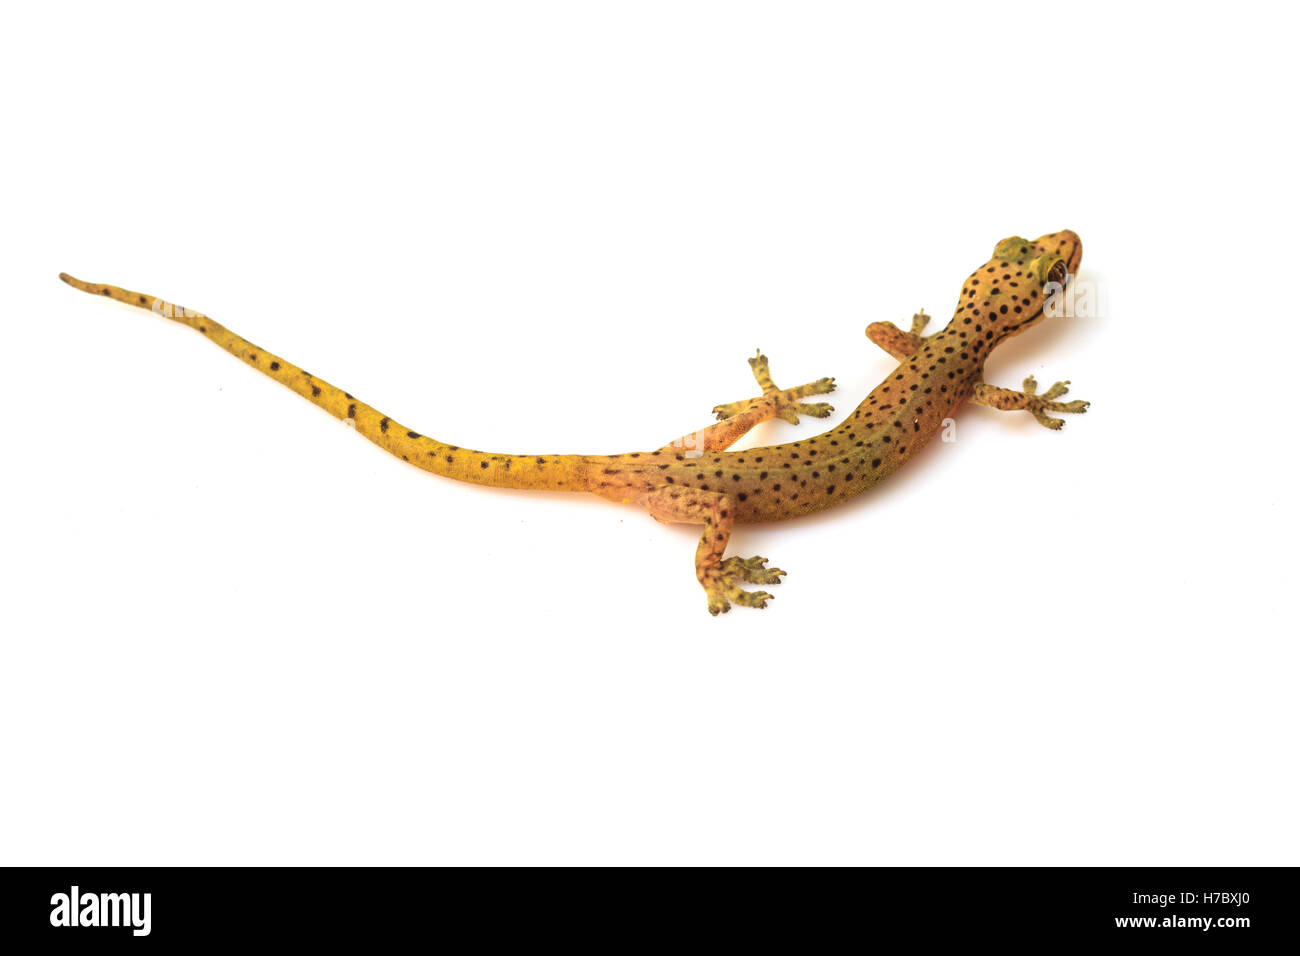 gecko lizard from trpical forest isolated on white background